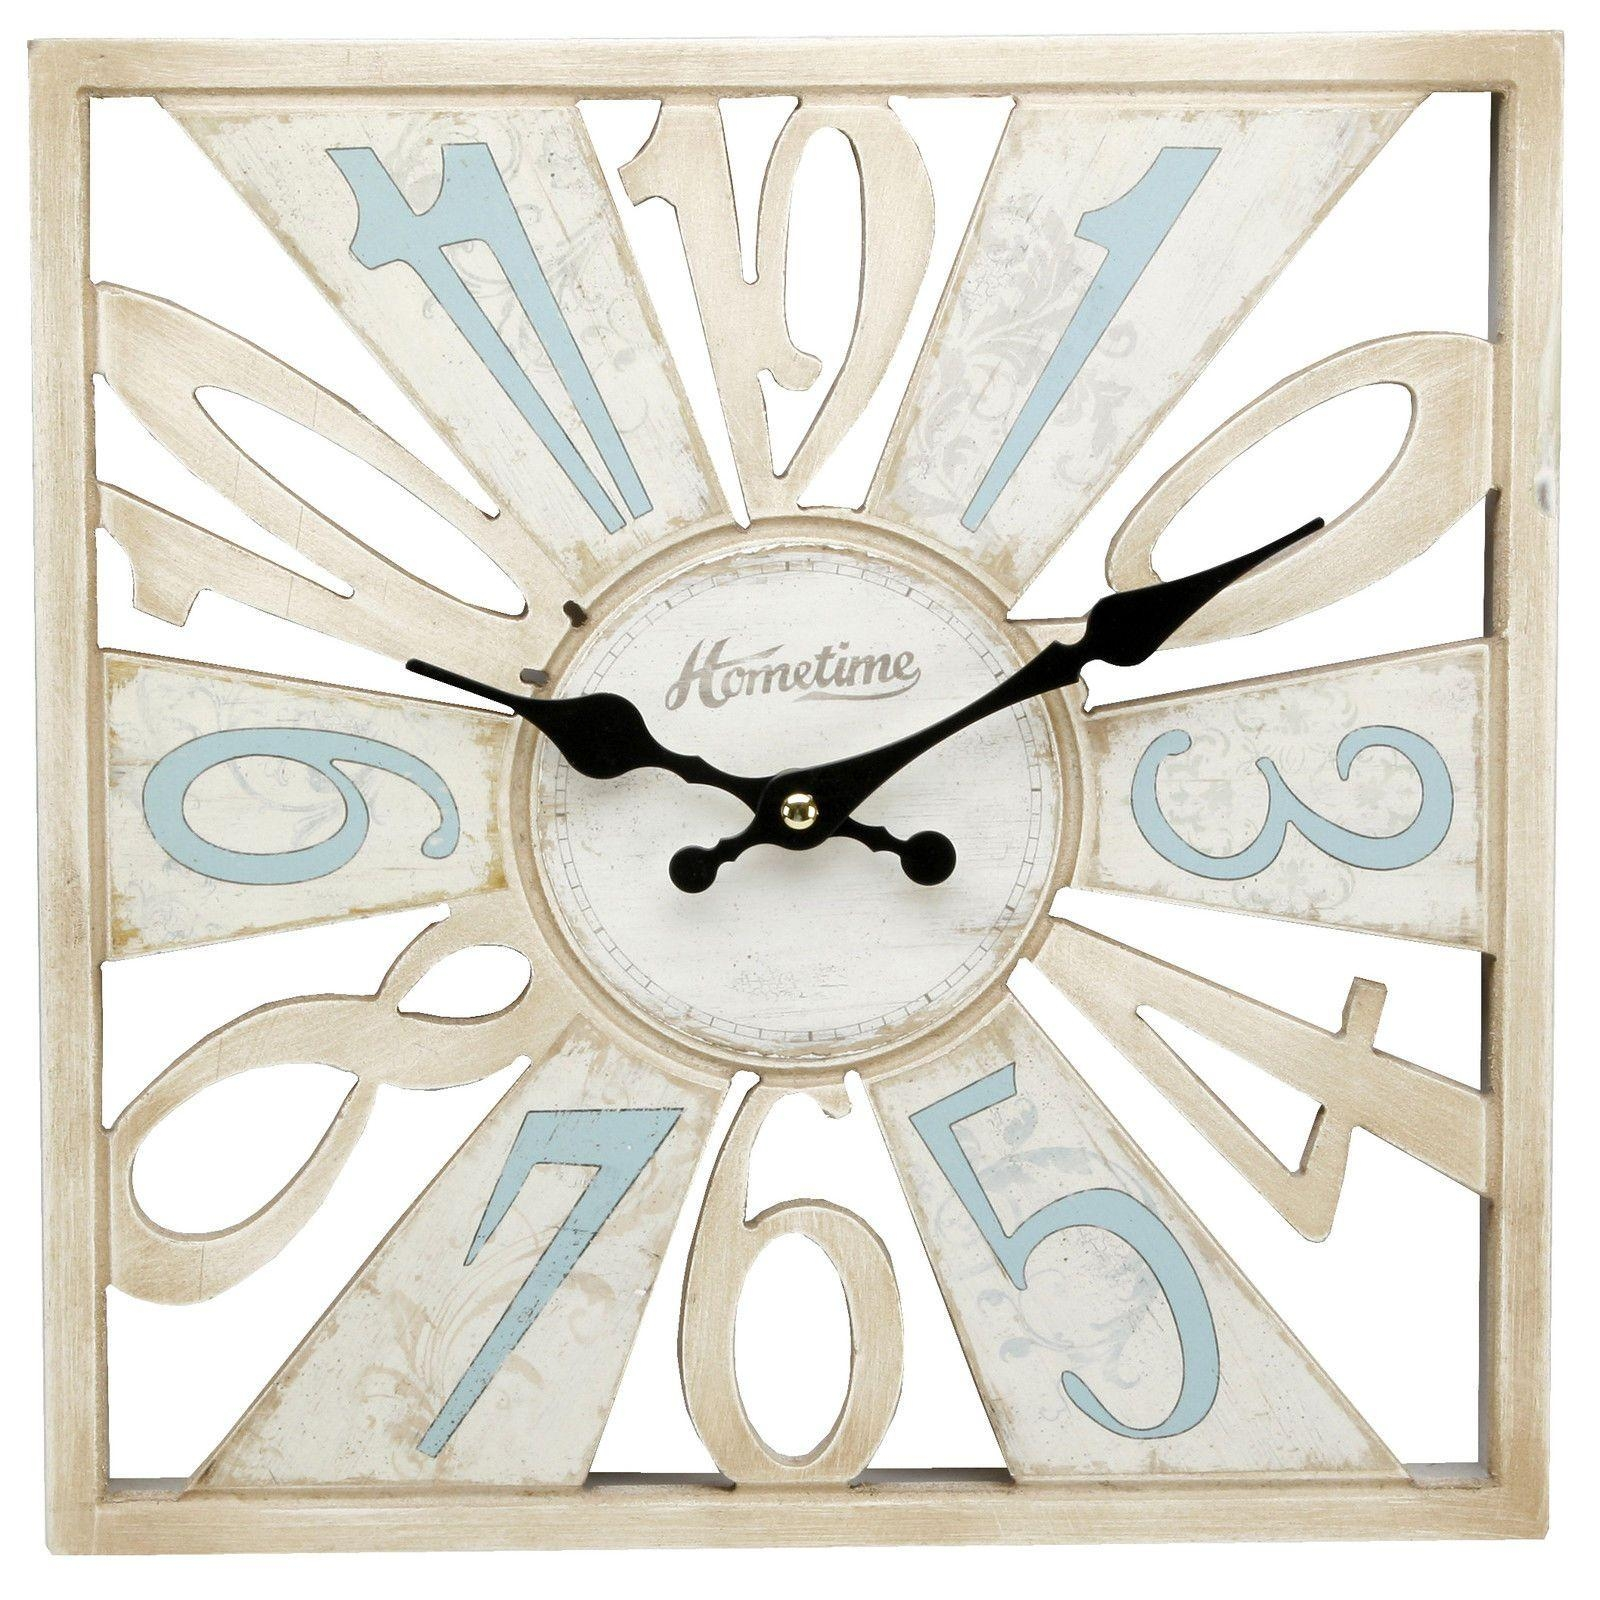 Cut Out Wooden Wall Clock Duck Egg Blue & Cream Shabby Chic Wall Pertaining To Blue And Cream Wall Art (View 2 of 20)